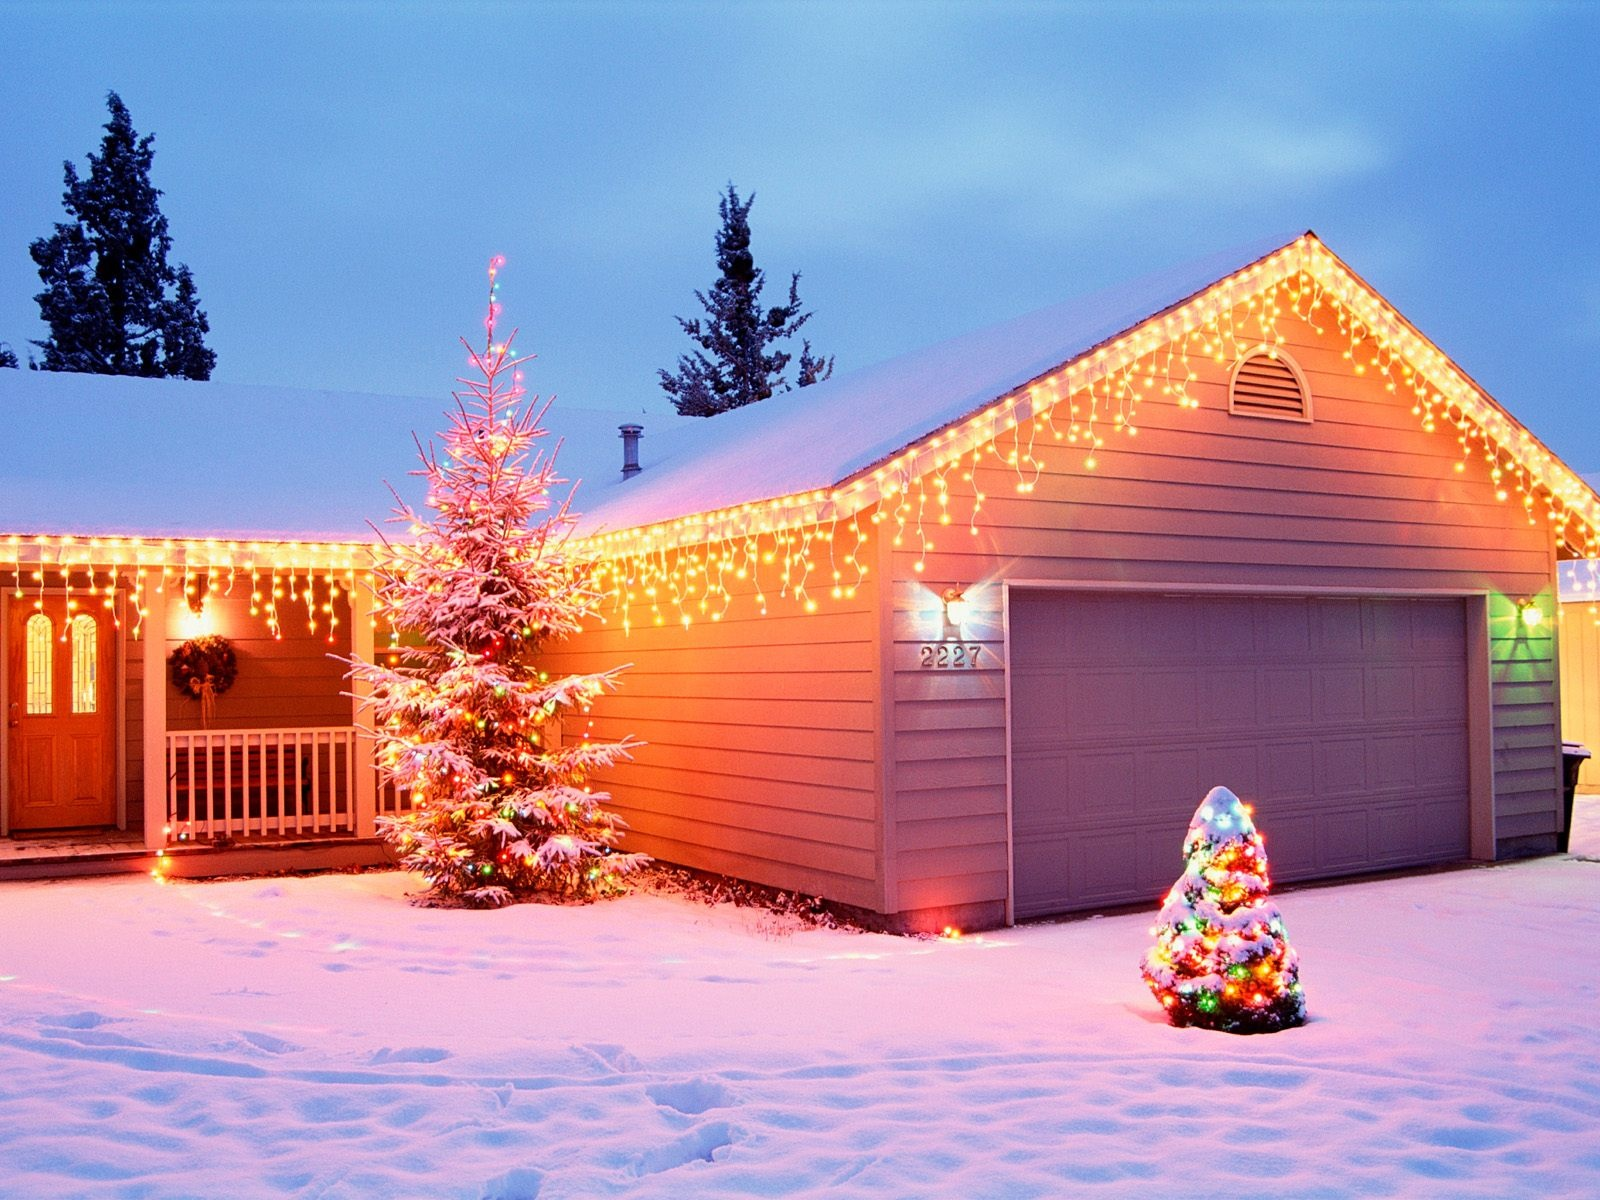 Image Christmas House Decorations Wallpapers And Stock Photos